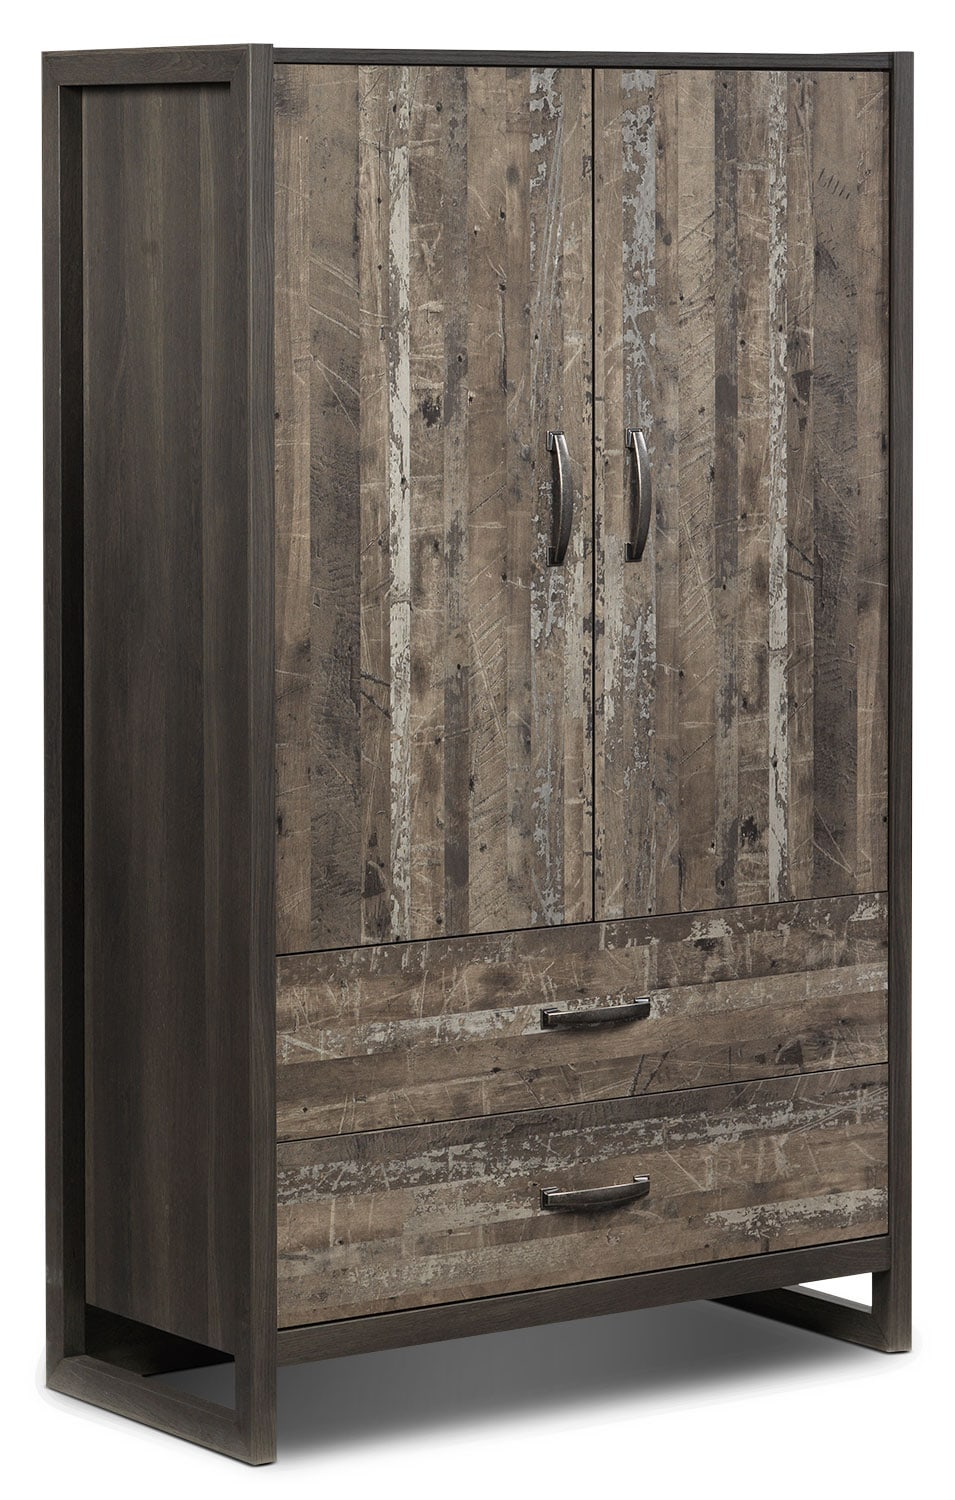 Hudson Armoire - Rustic Brown